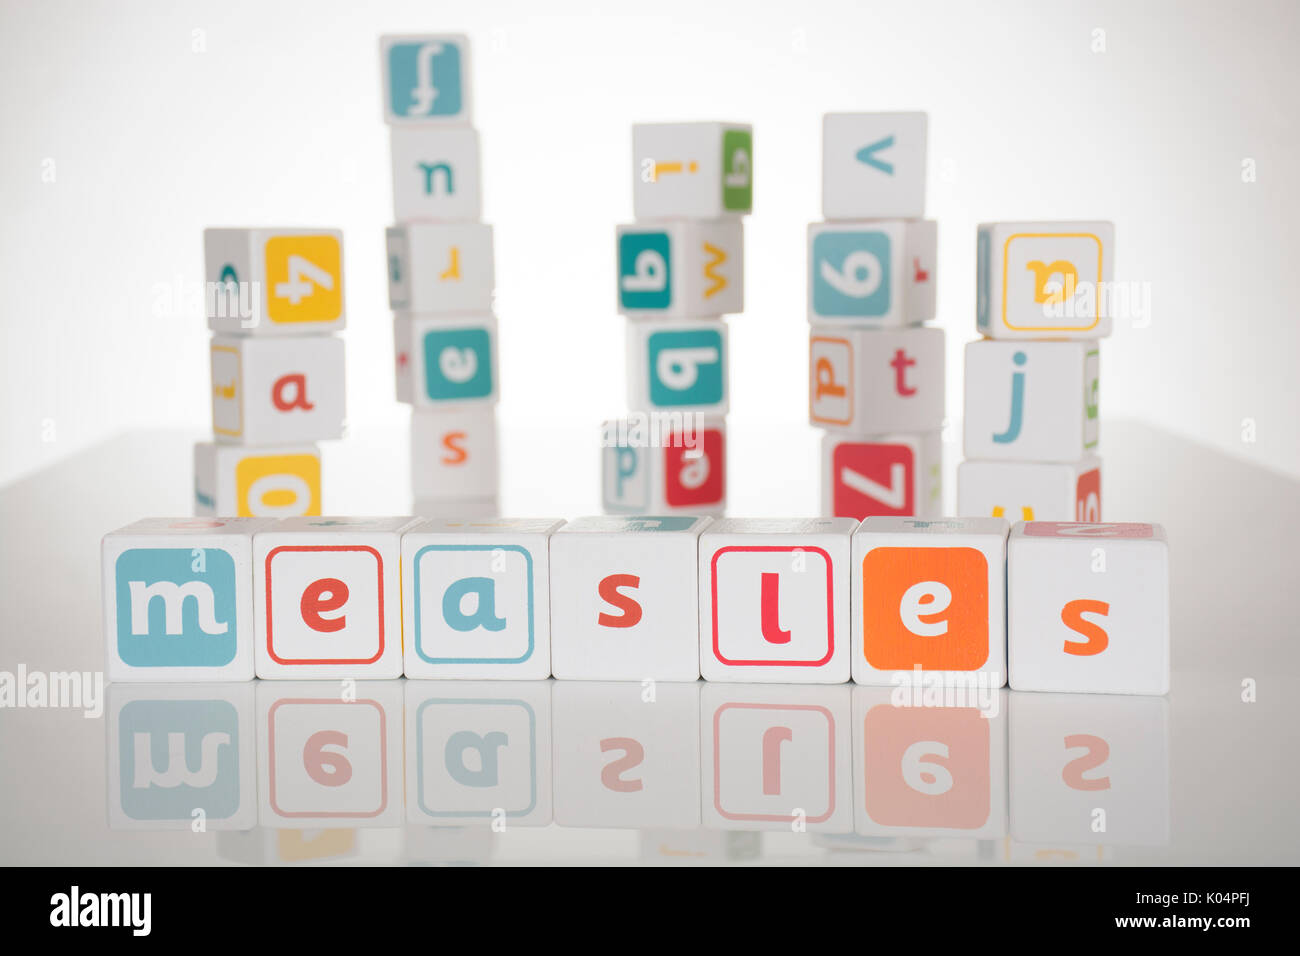 Measles spelled out in toy building blocks - Stock Image